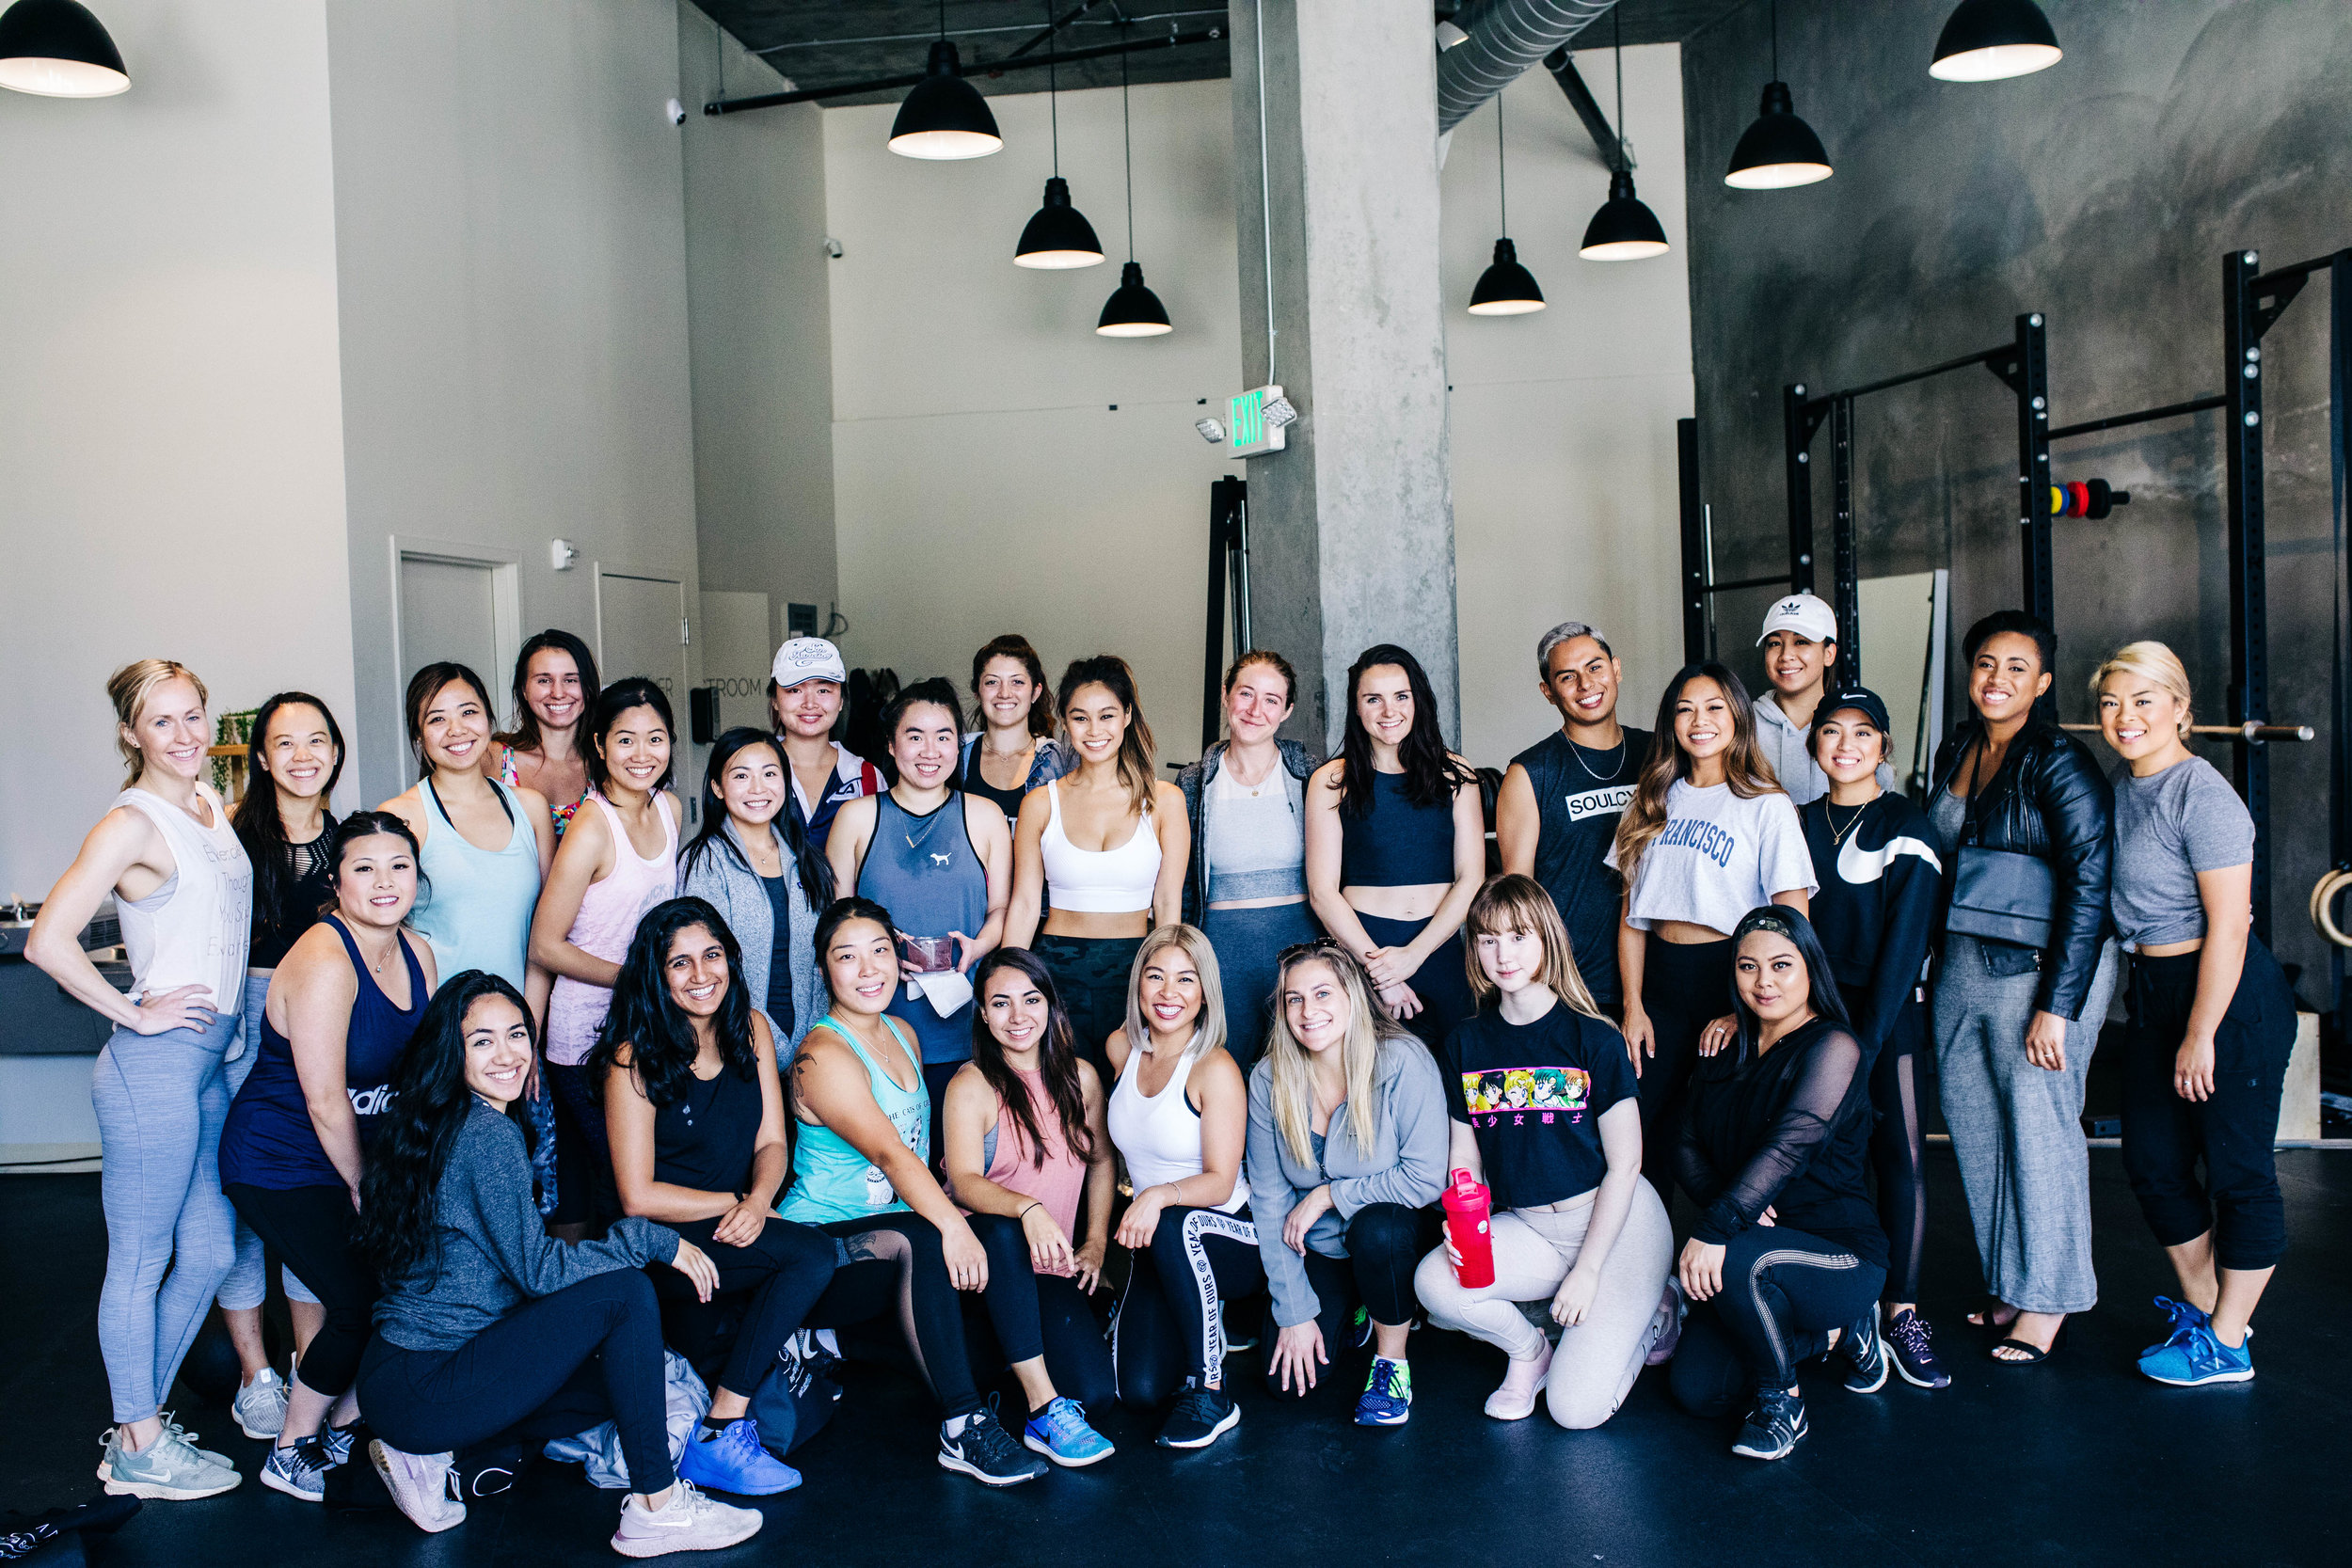 Strongbabes Workout Event   November 4th, 2018